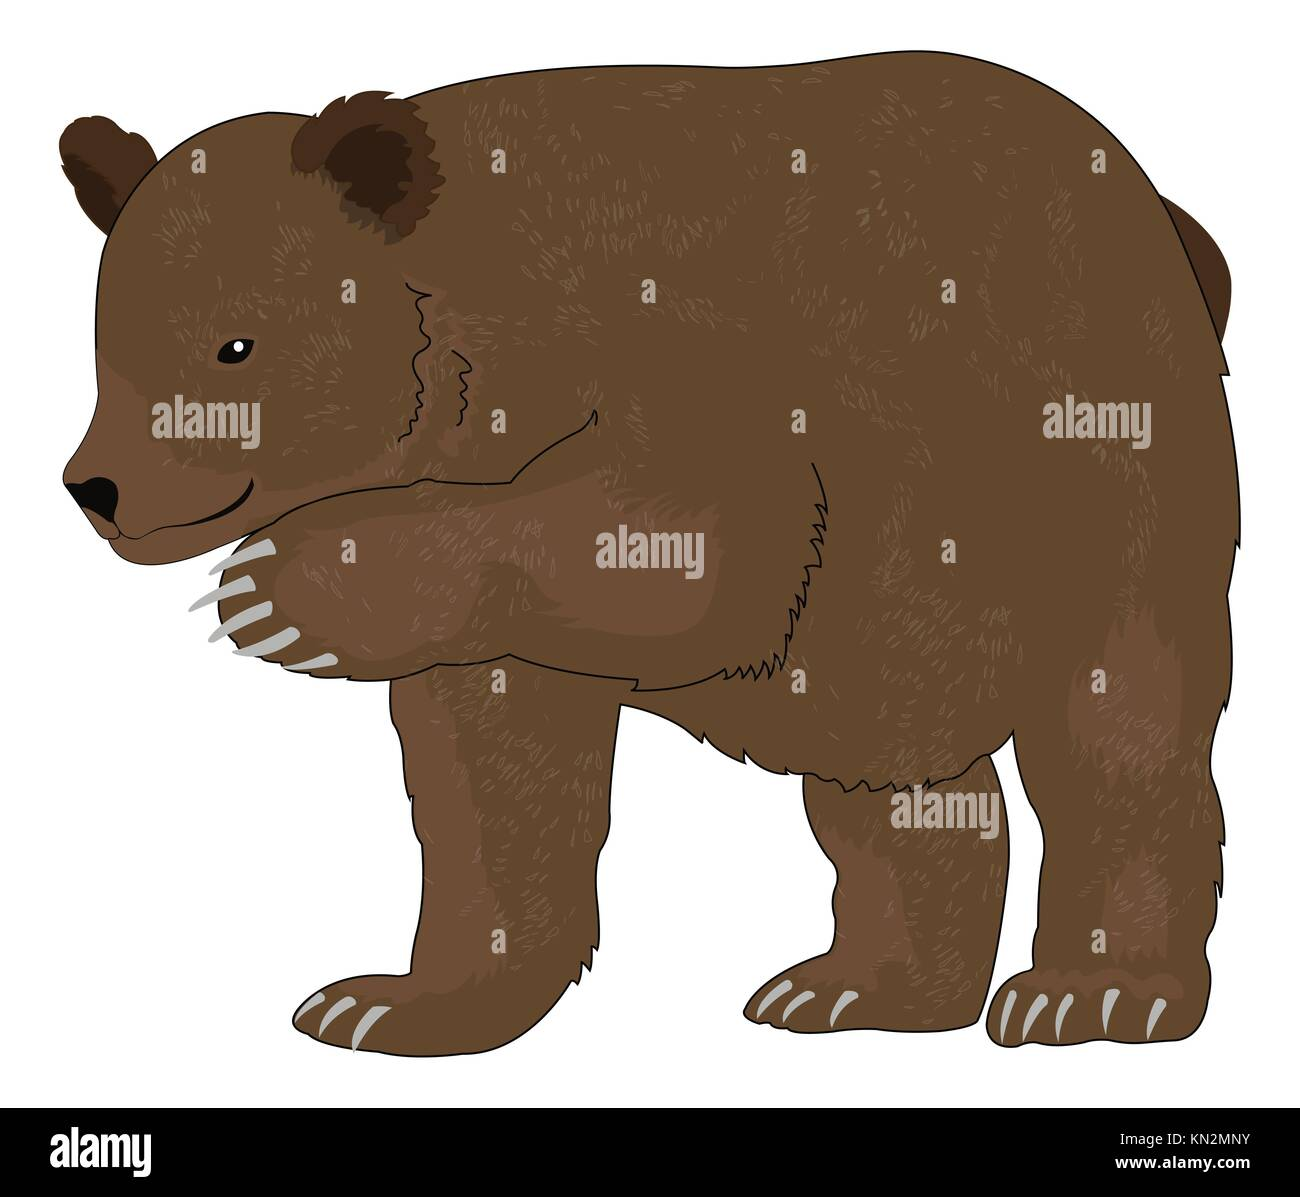 Bear or Ursus arctos, Brown, vector illustration Stock Photo